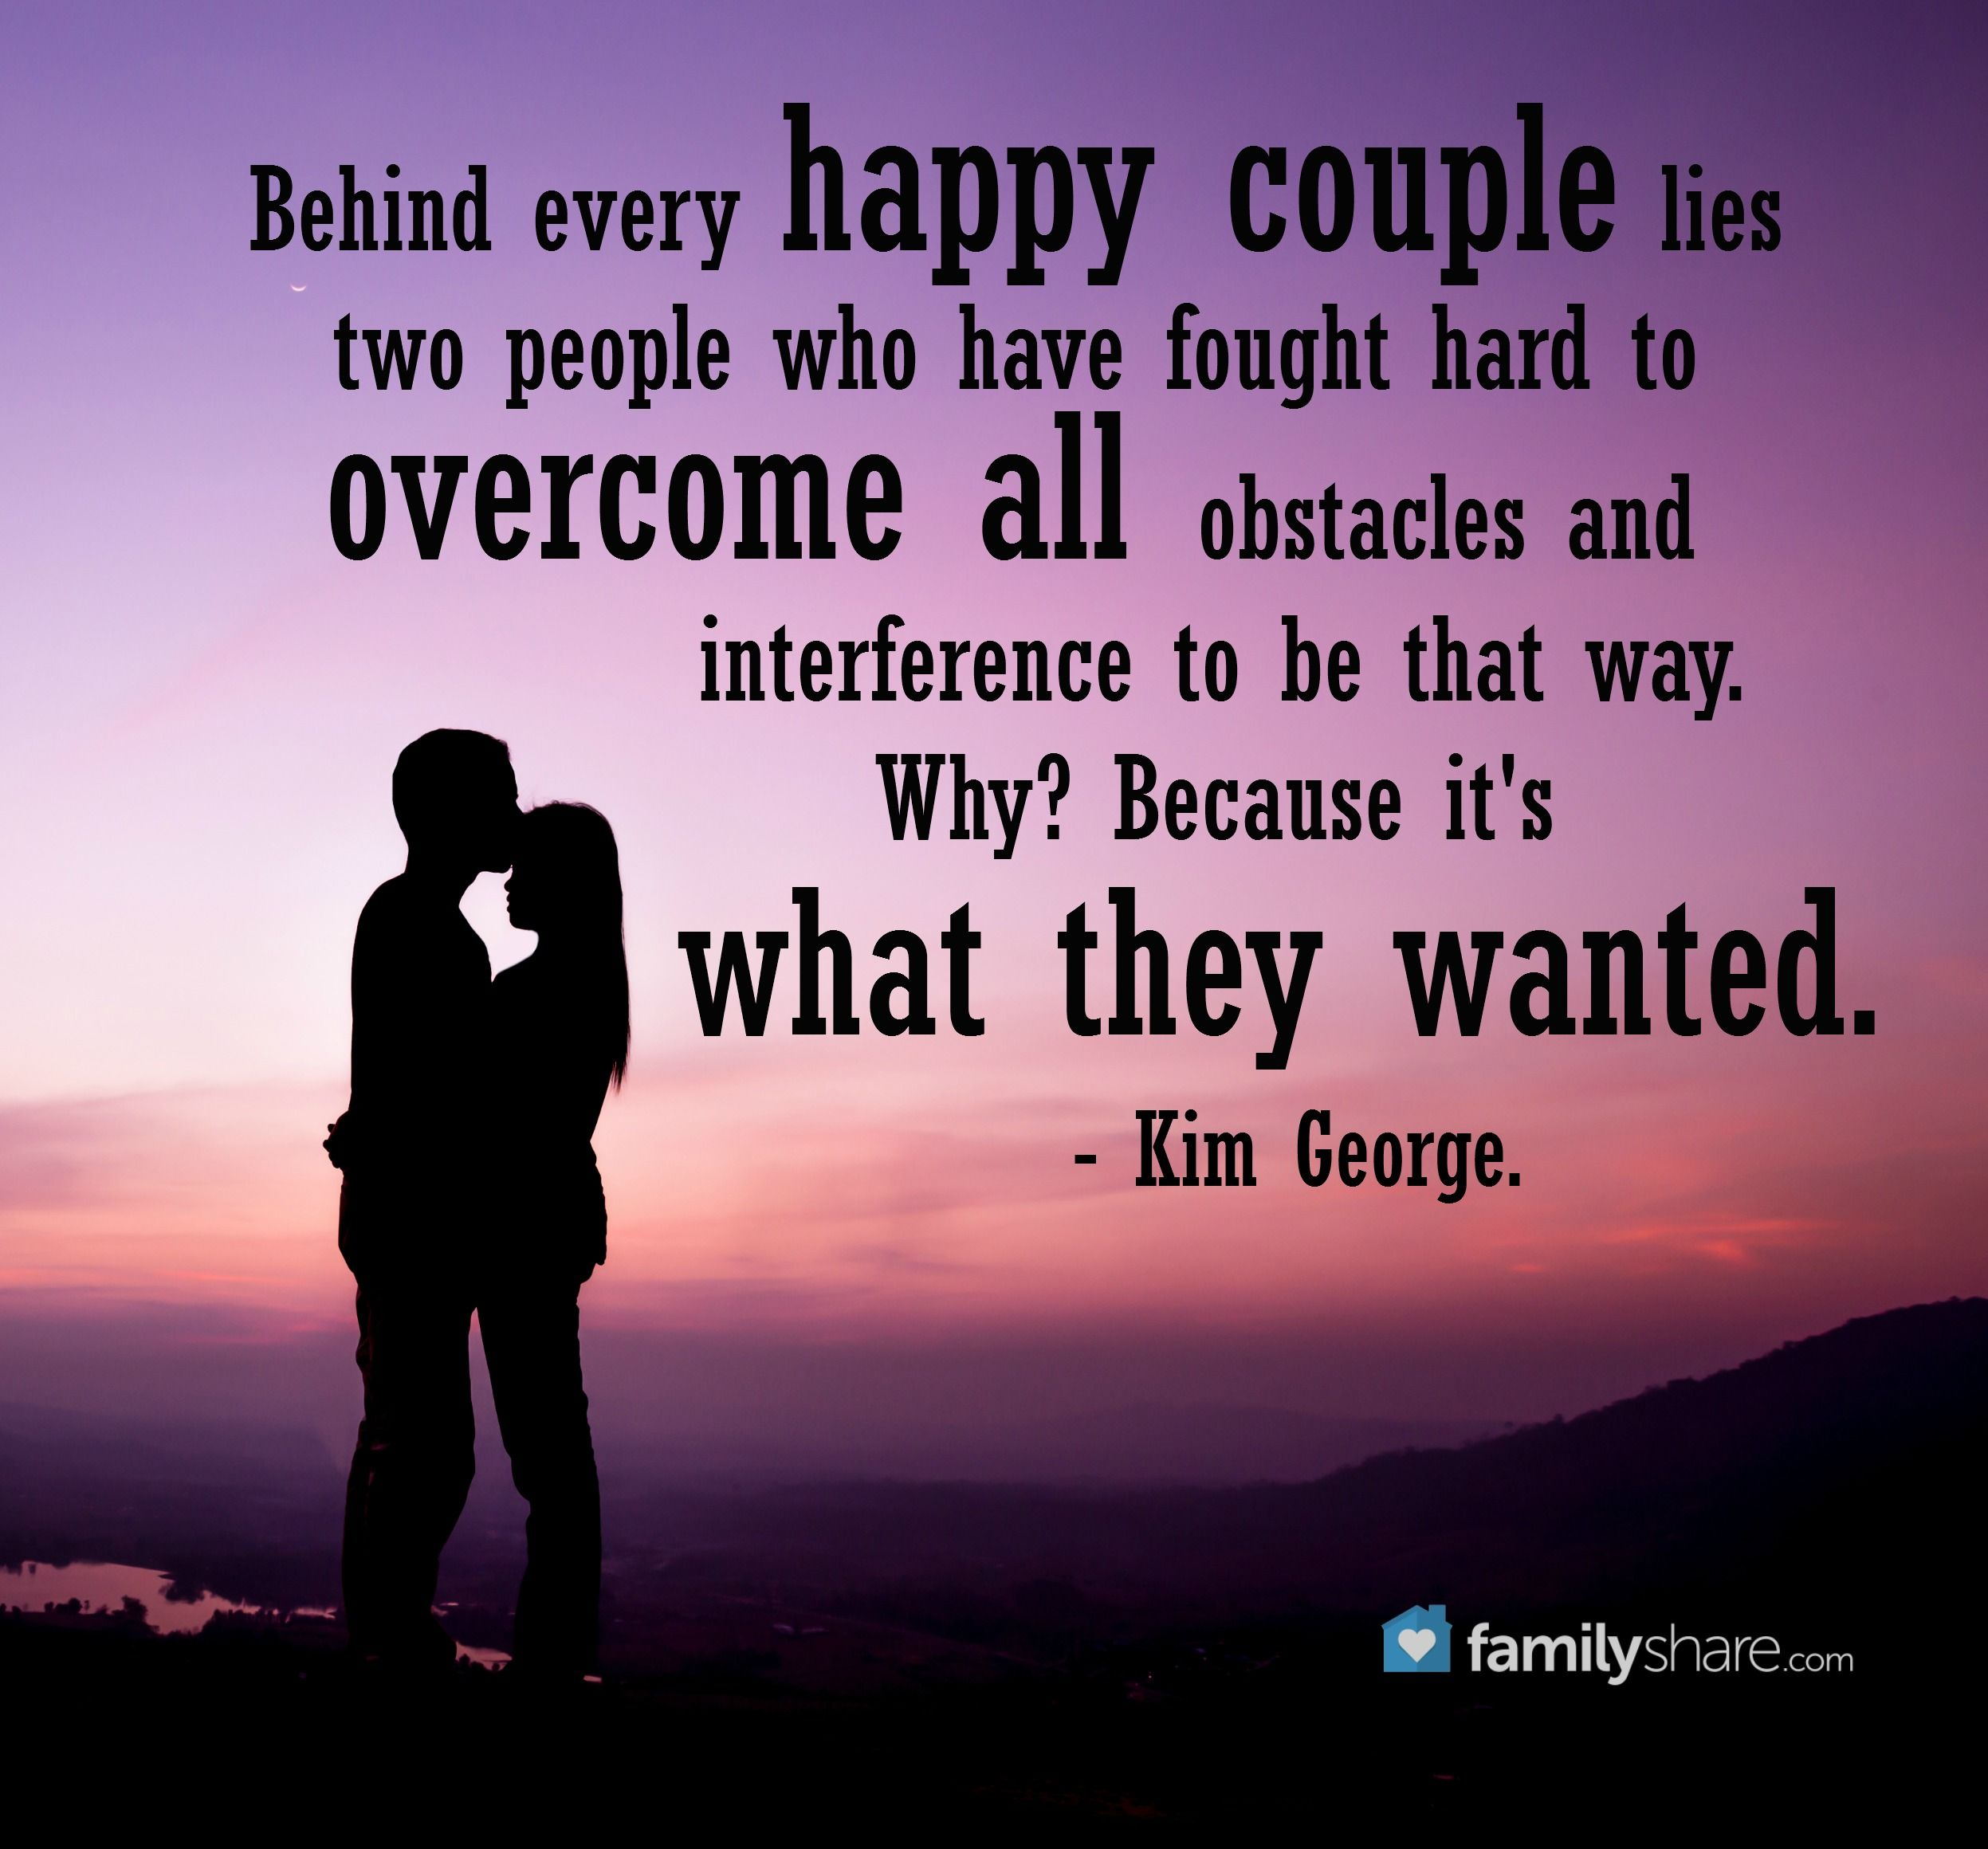 Behind Every Happy Couple Lies Two People Who Have Fought Hard To